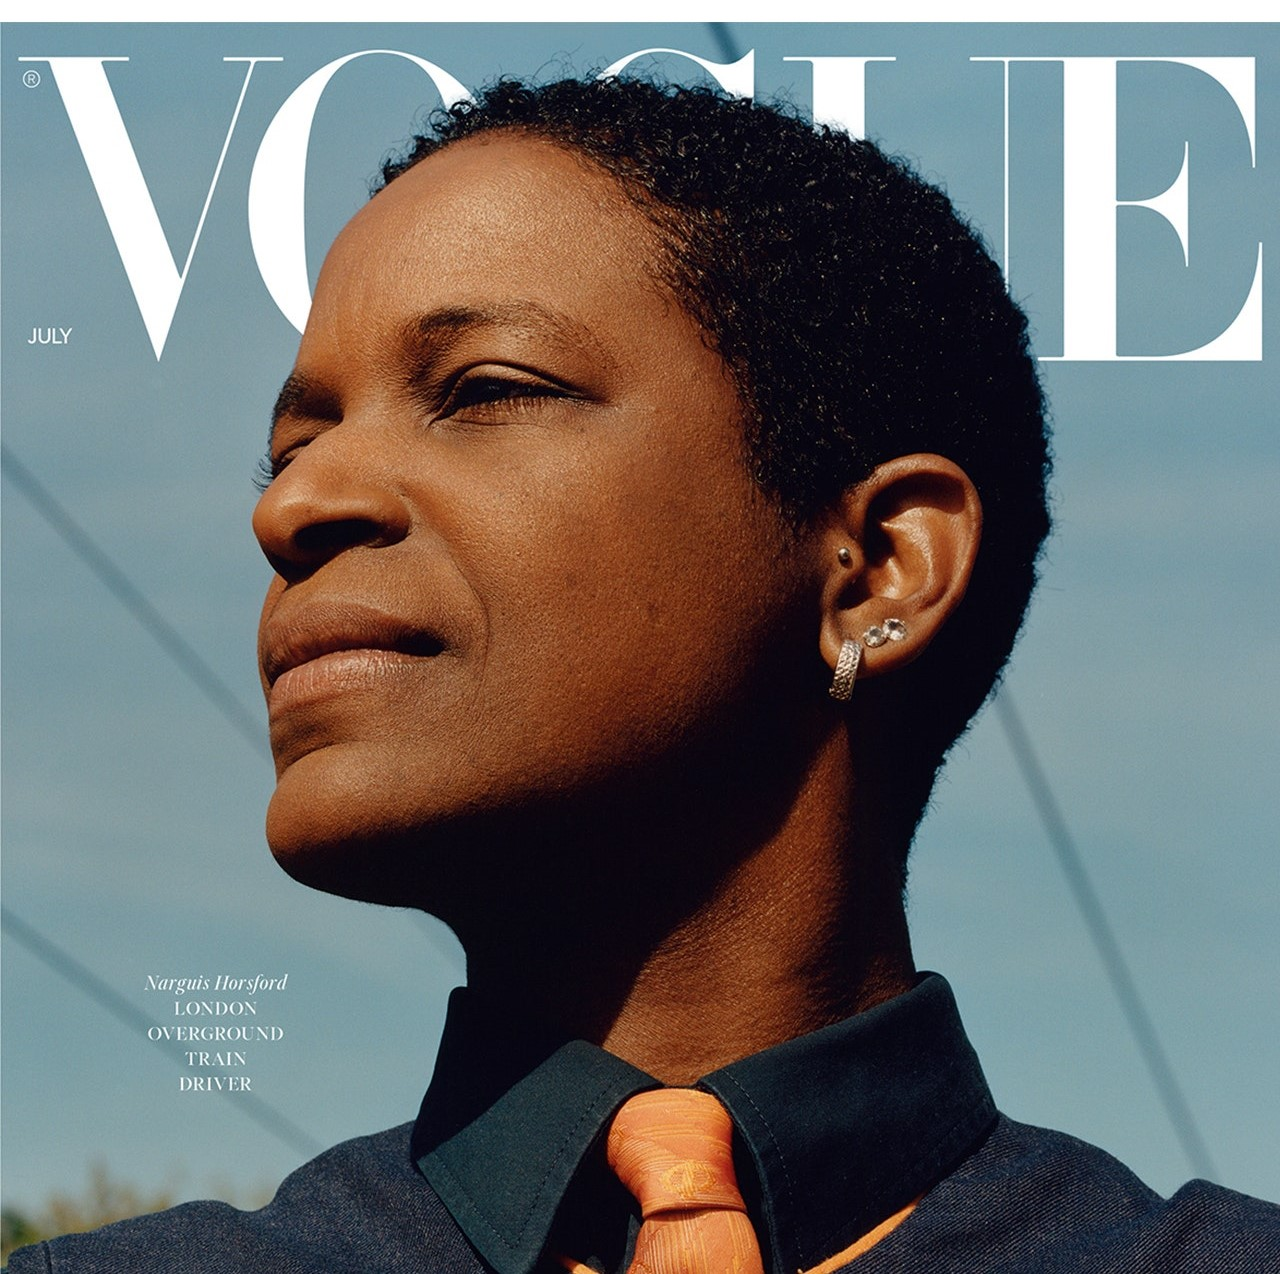 British Vogue Pays Homage to Key Workers with Latest Issue